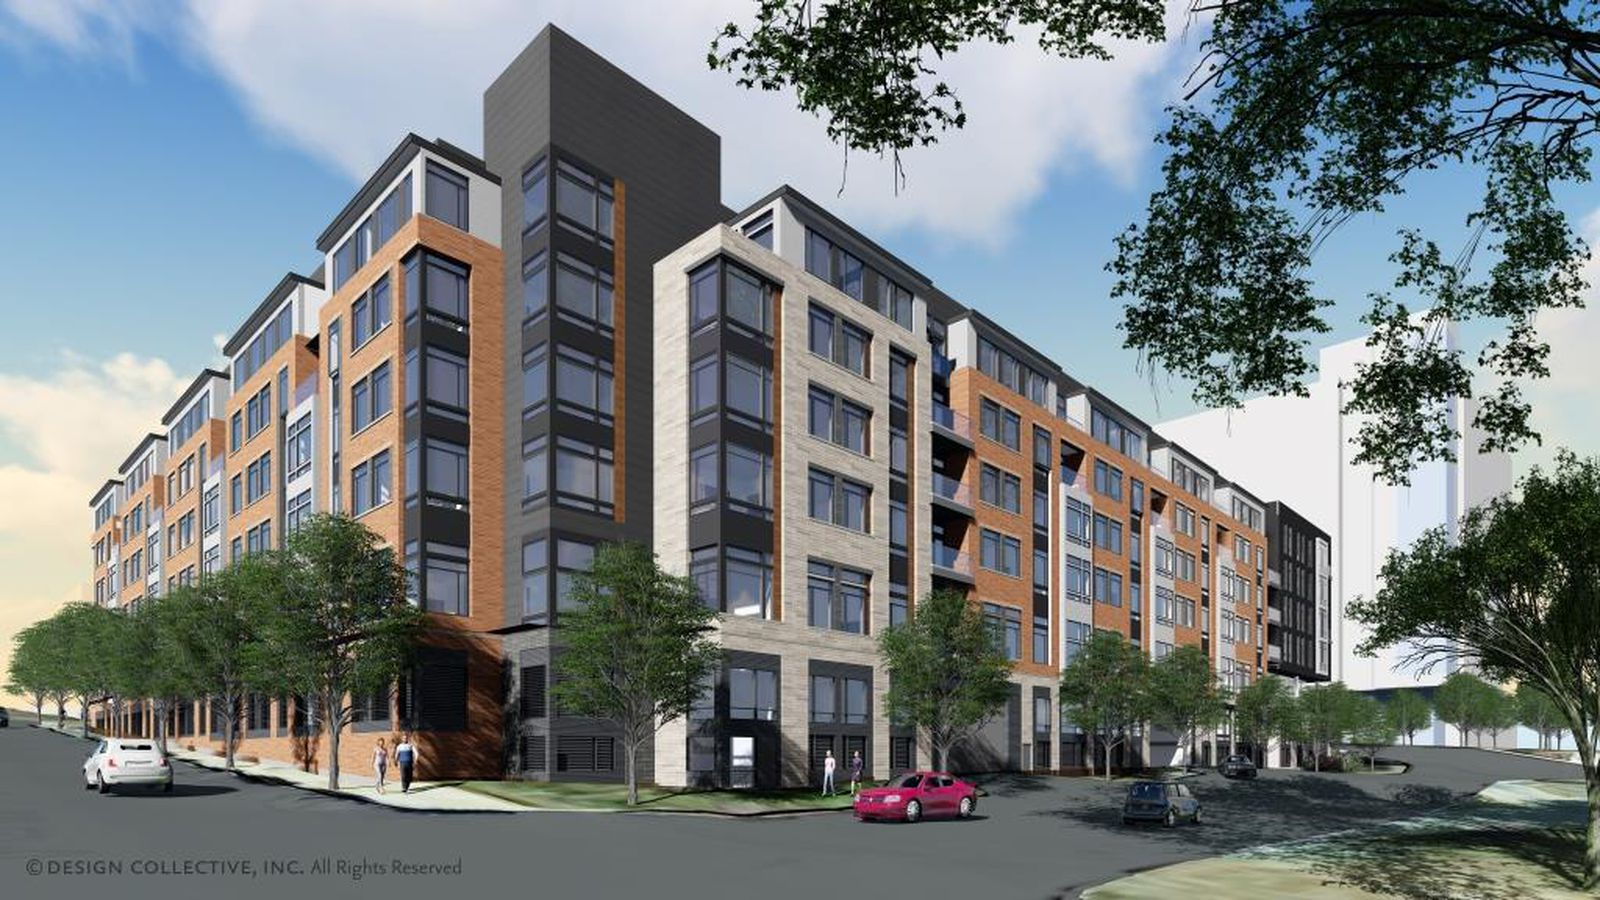 New Renderings Reveal Plans For Luxury Apartments Near